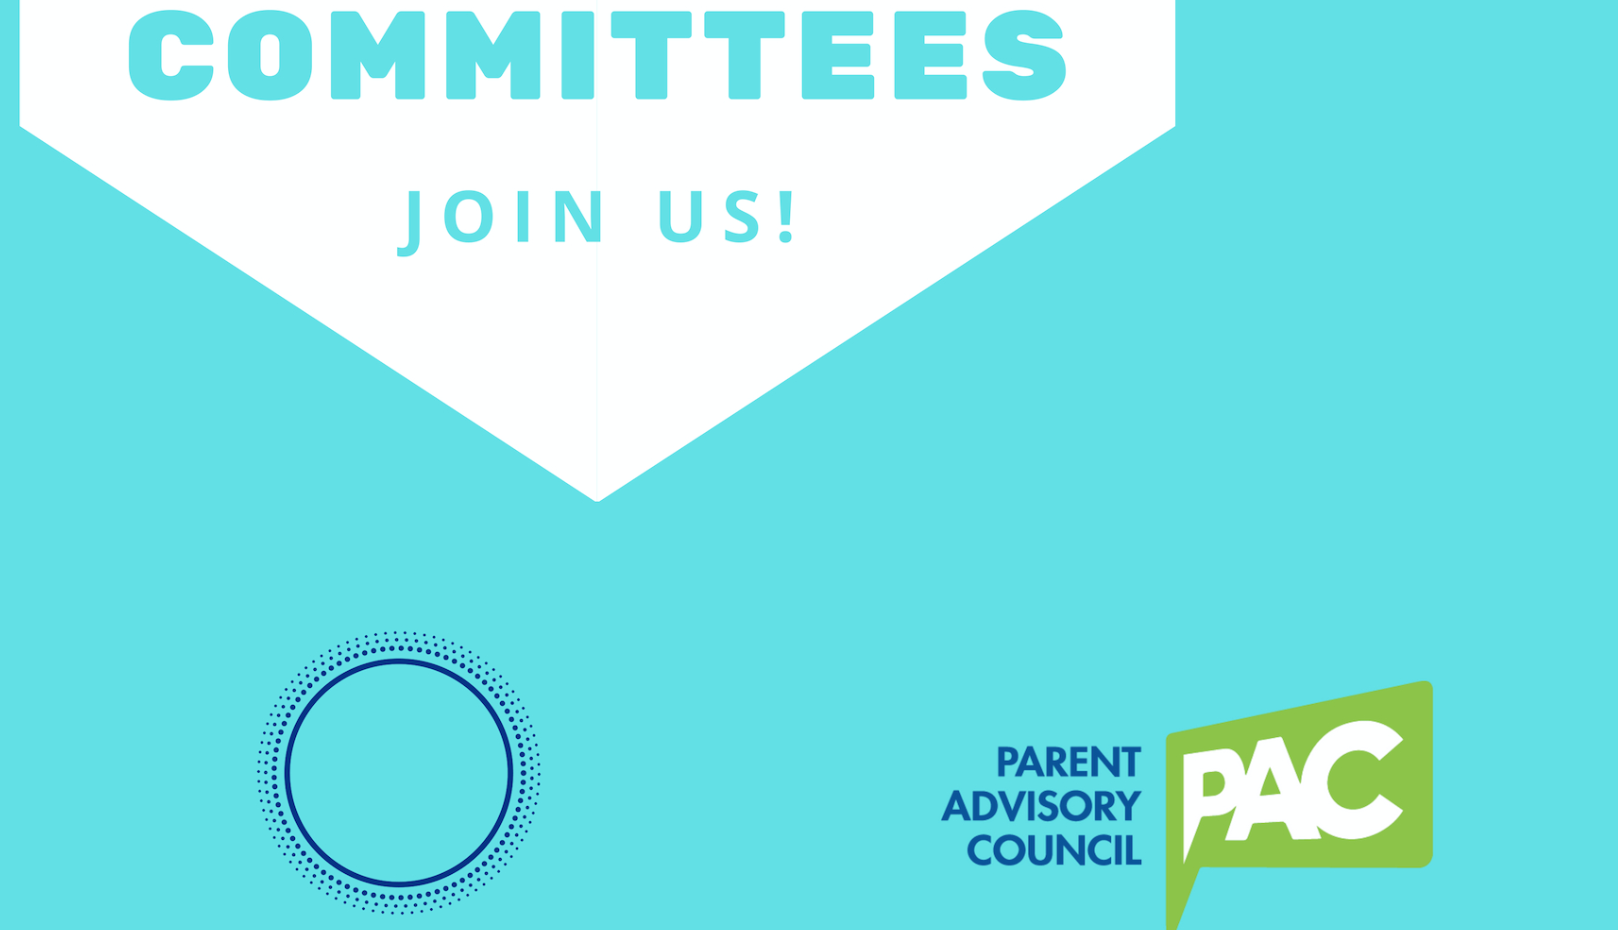 Committees Join Us!